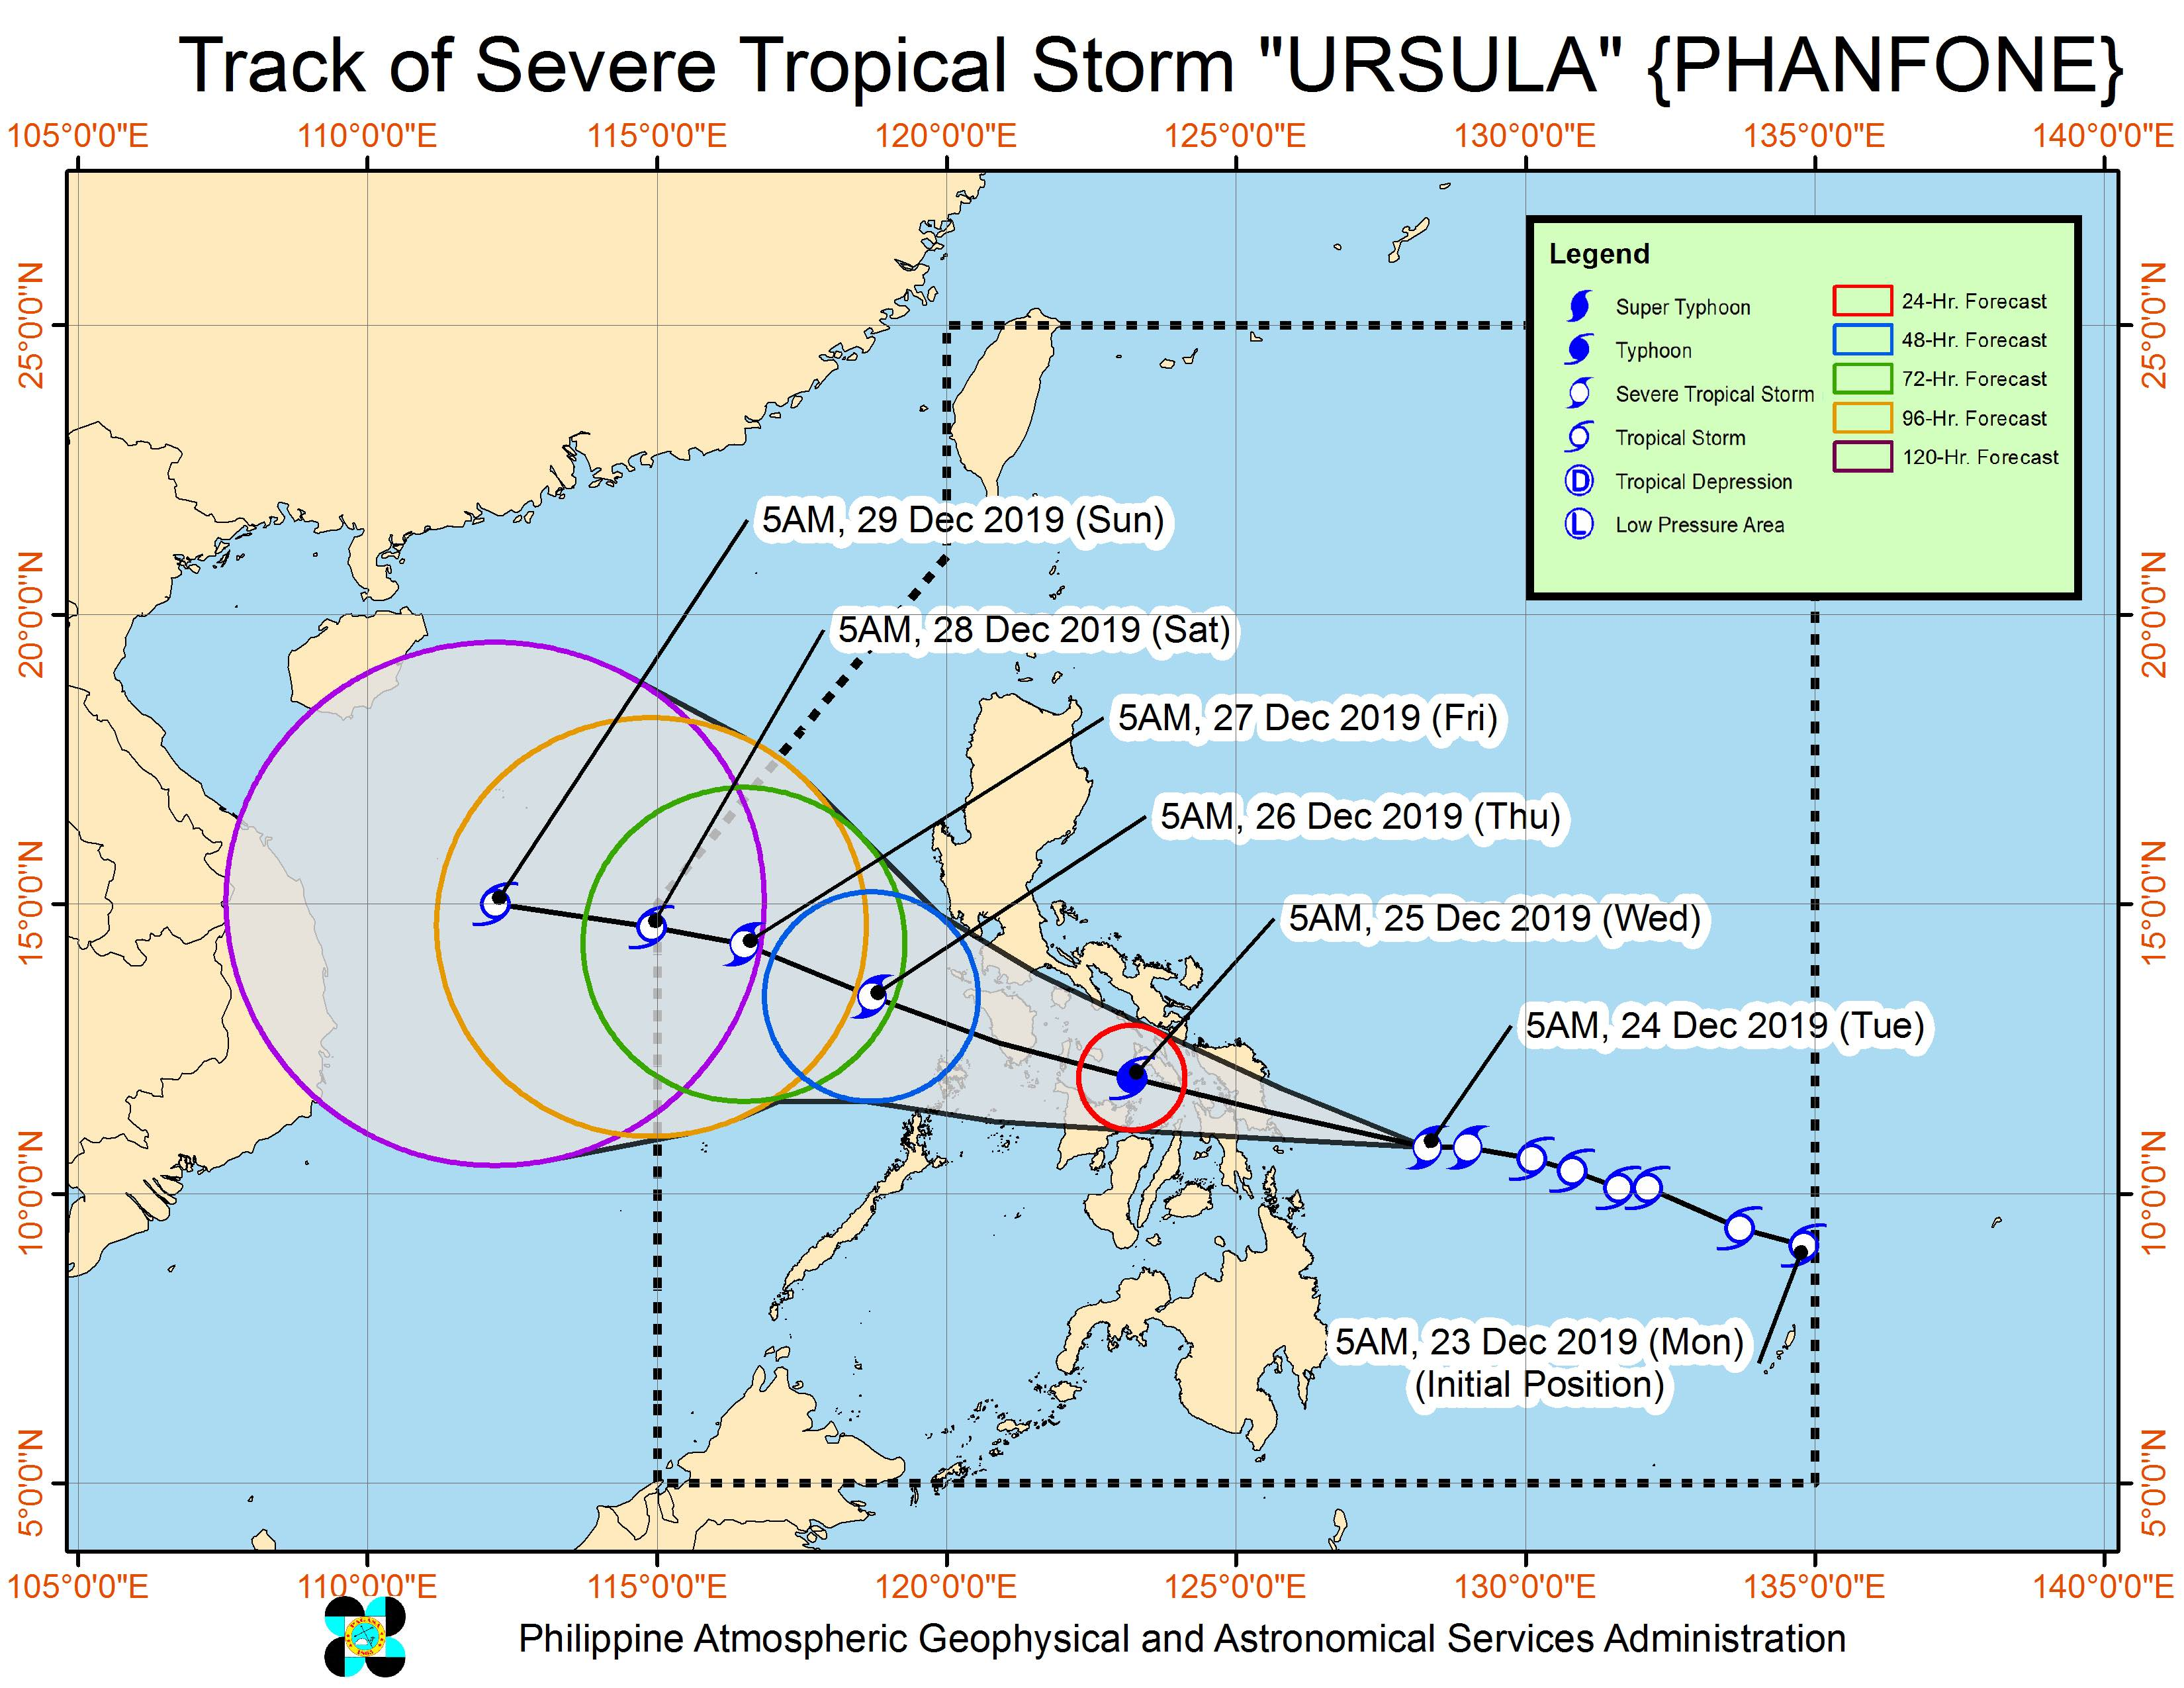 Forecast track of Severe Tropical Storm Ursula (Phanfone) as of December 24, 2019, 8 am. Image from PAGASA